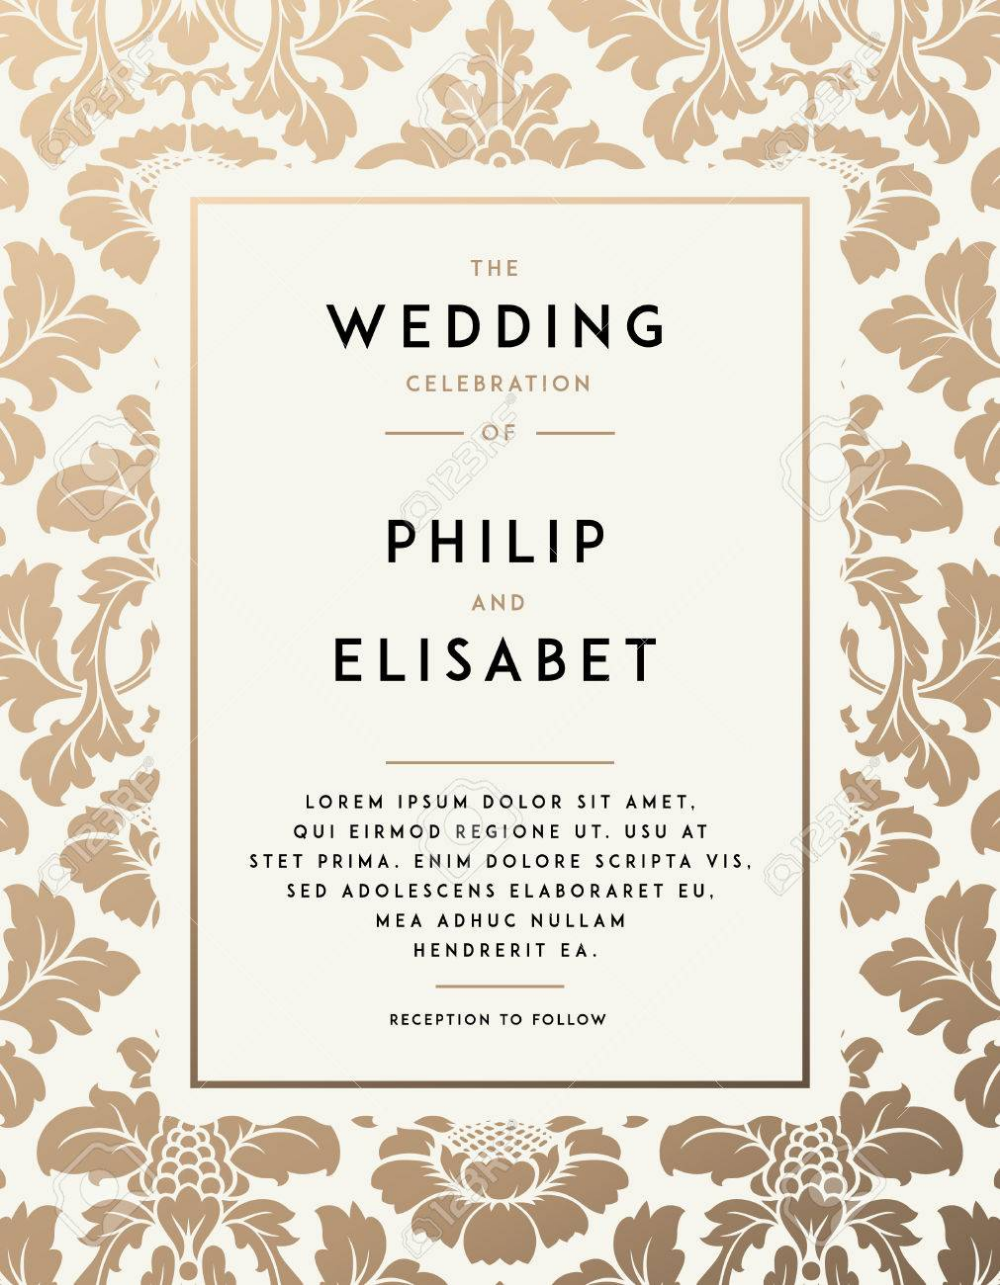 Wedding card free download & images collection: Free ...